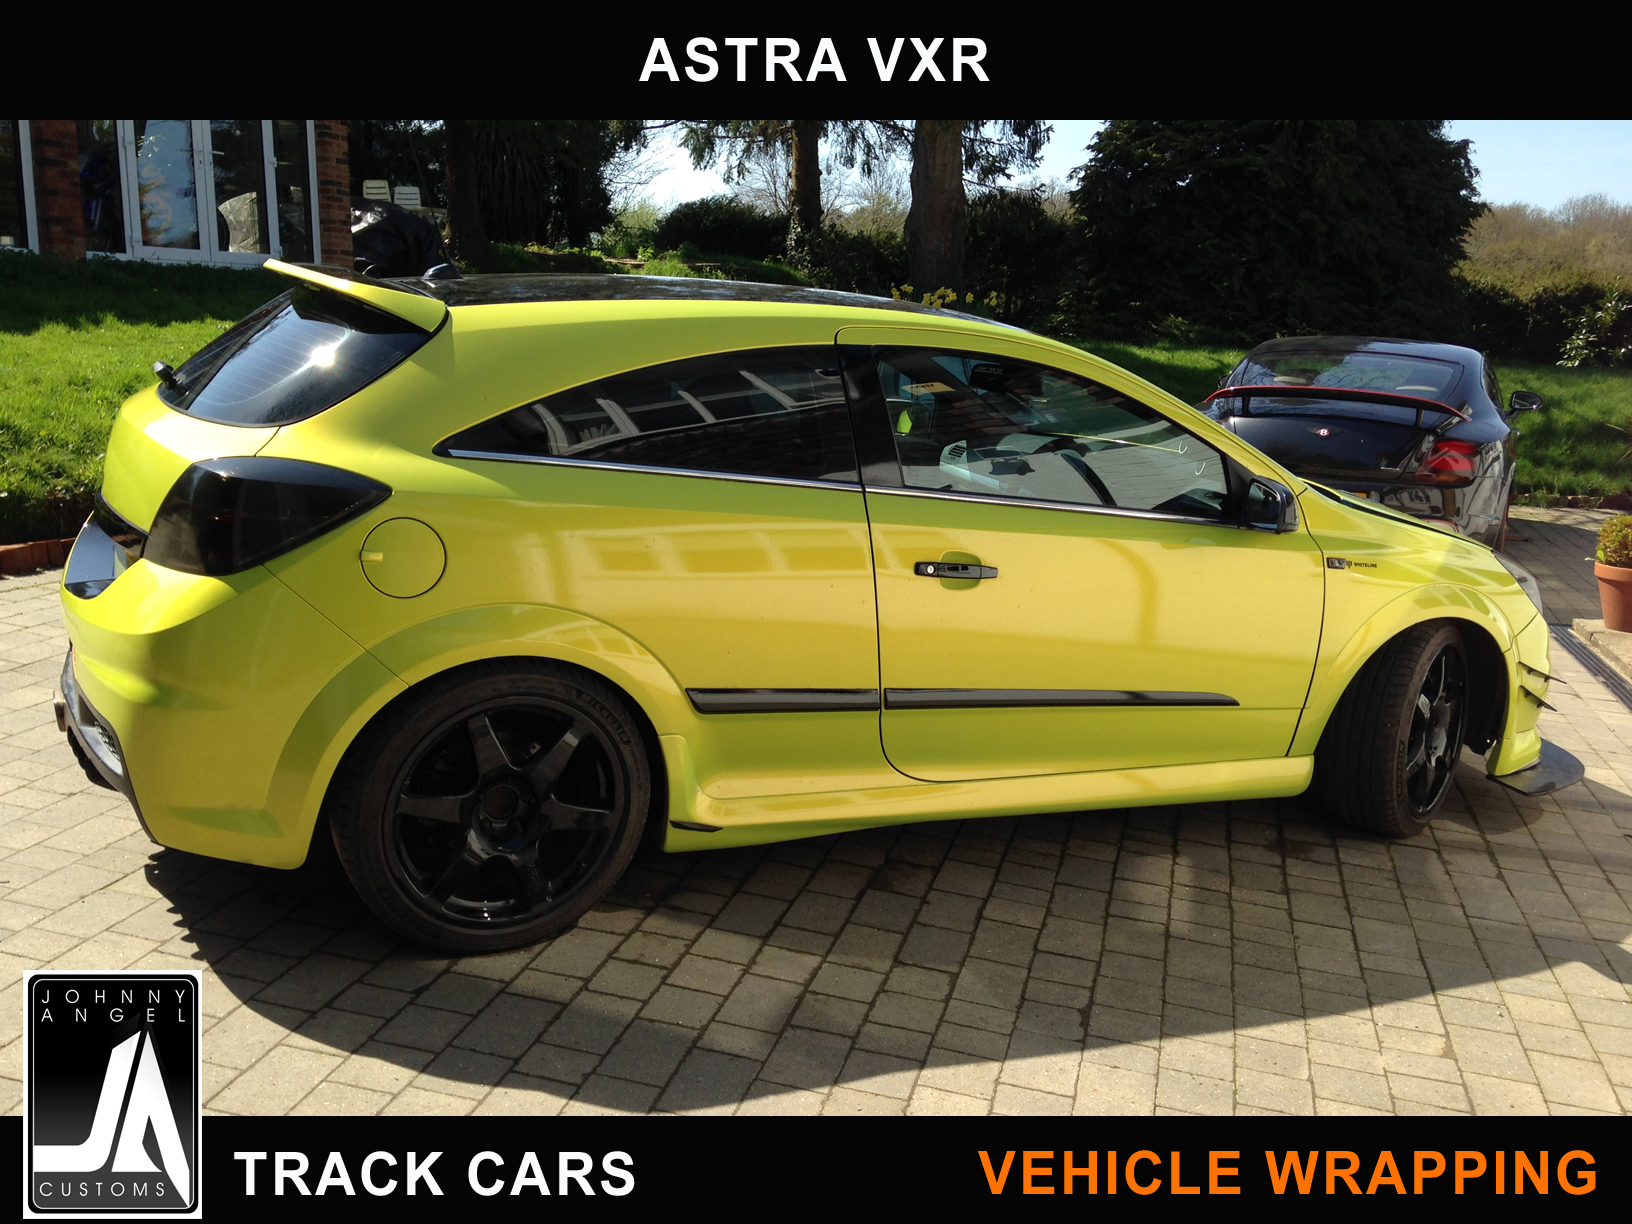 Johnny Angel Customs Track Cars Vehicle Wrapping Astra VXR p1